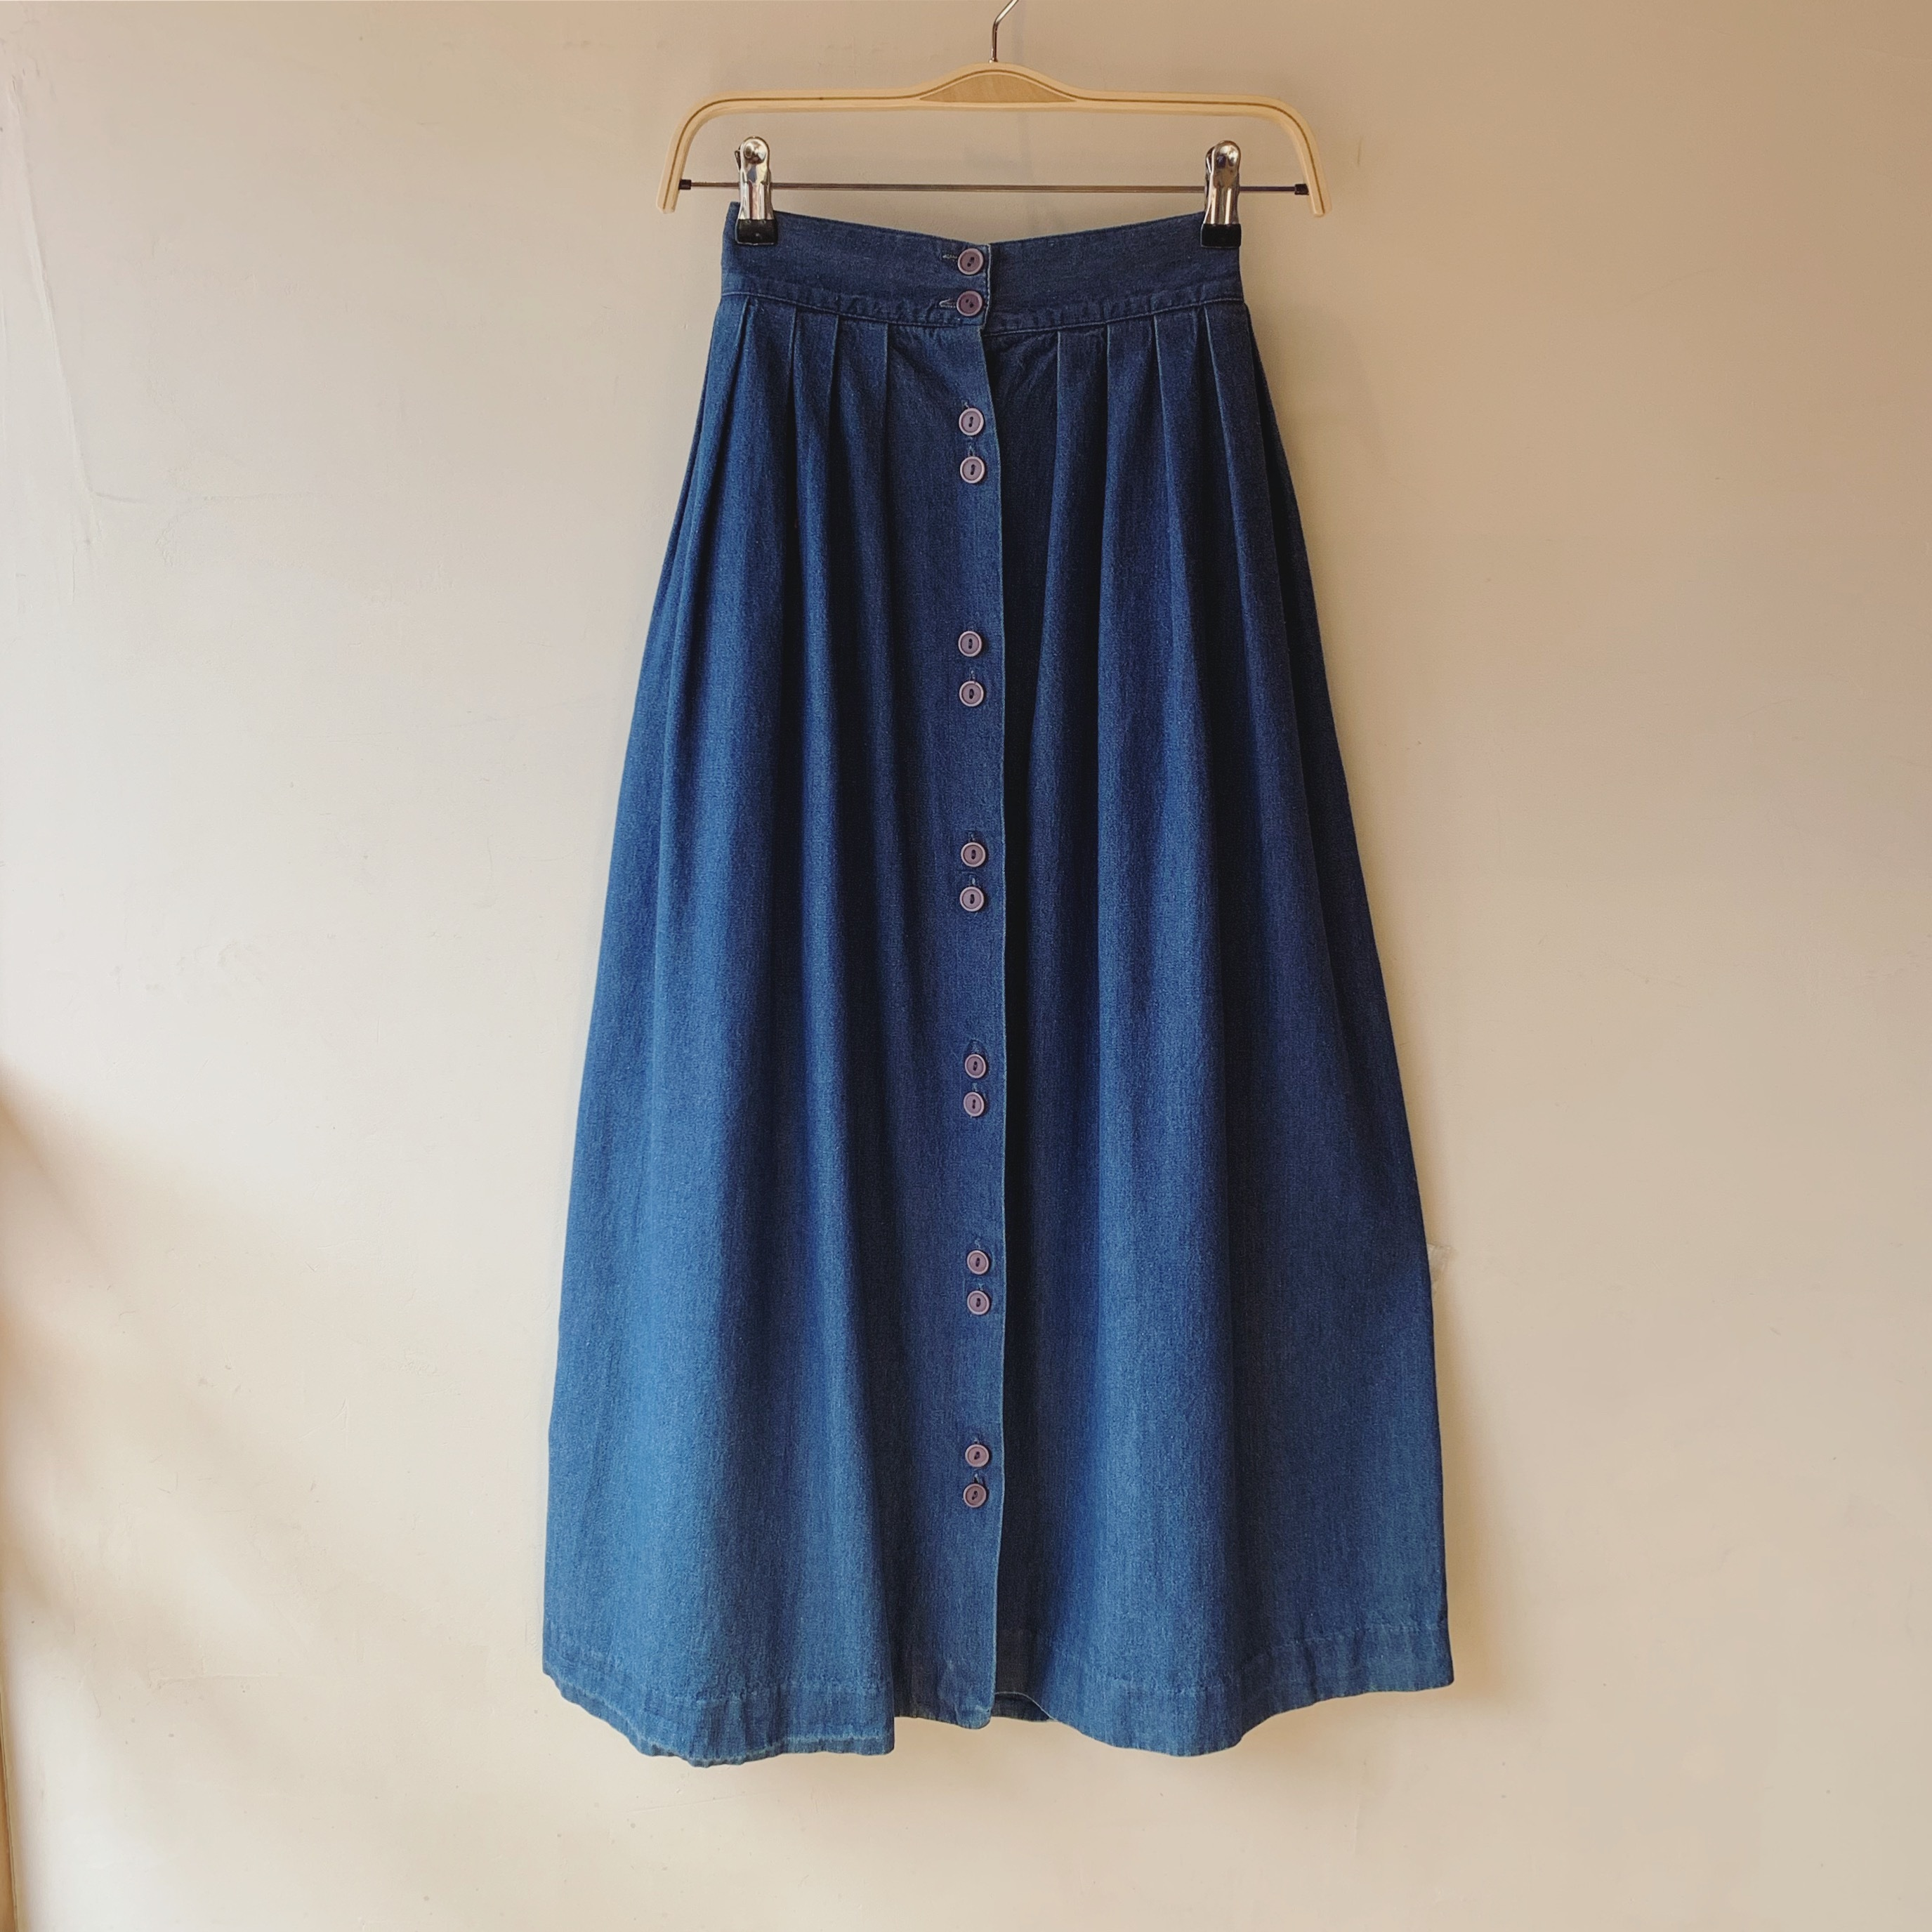 vintage center button denim skirt